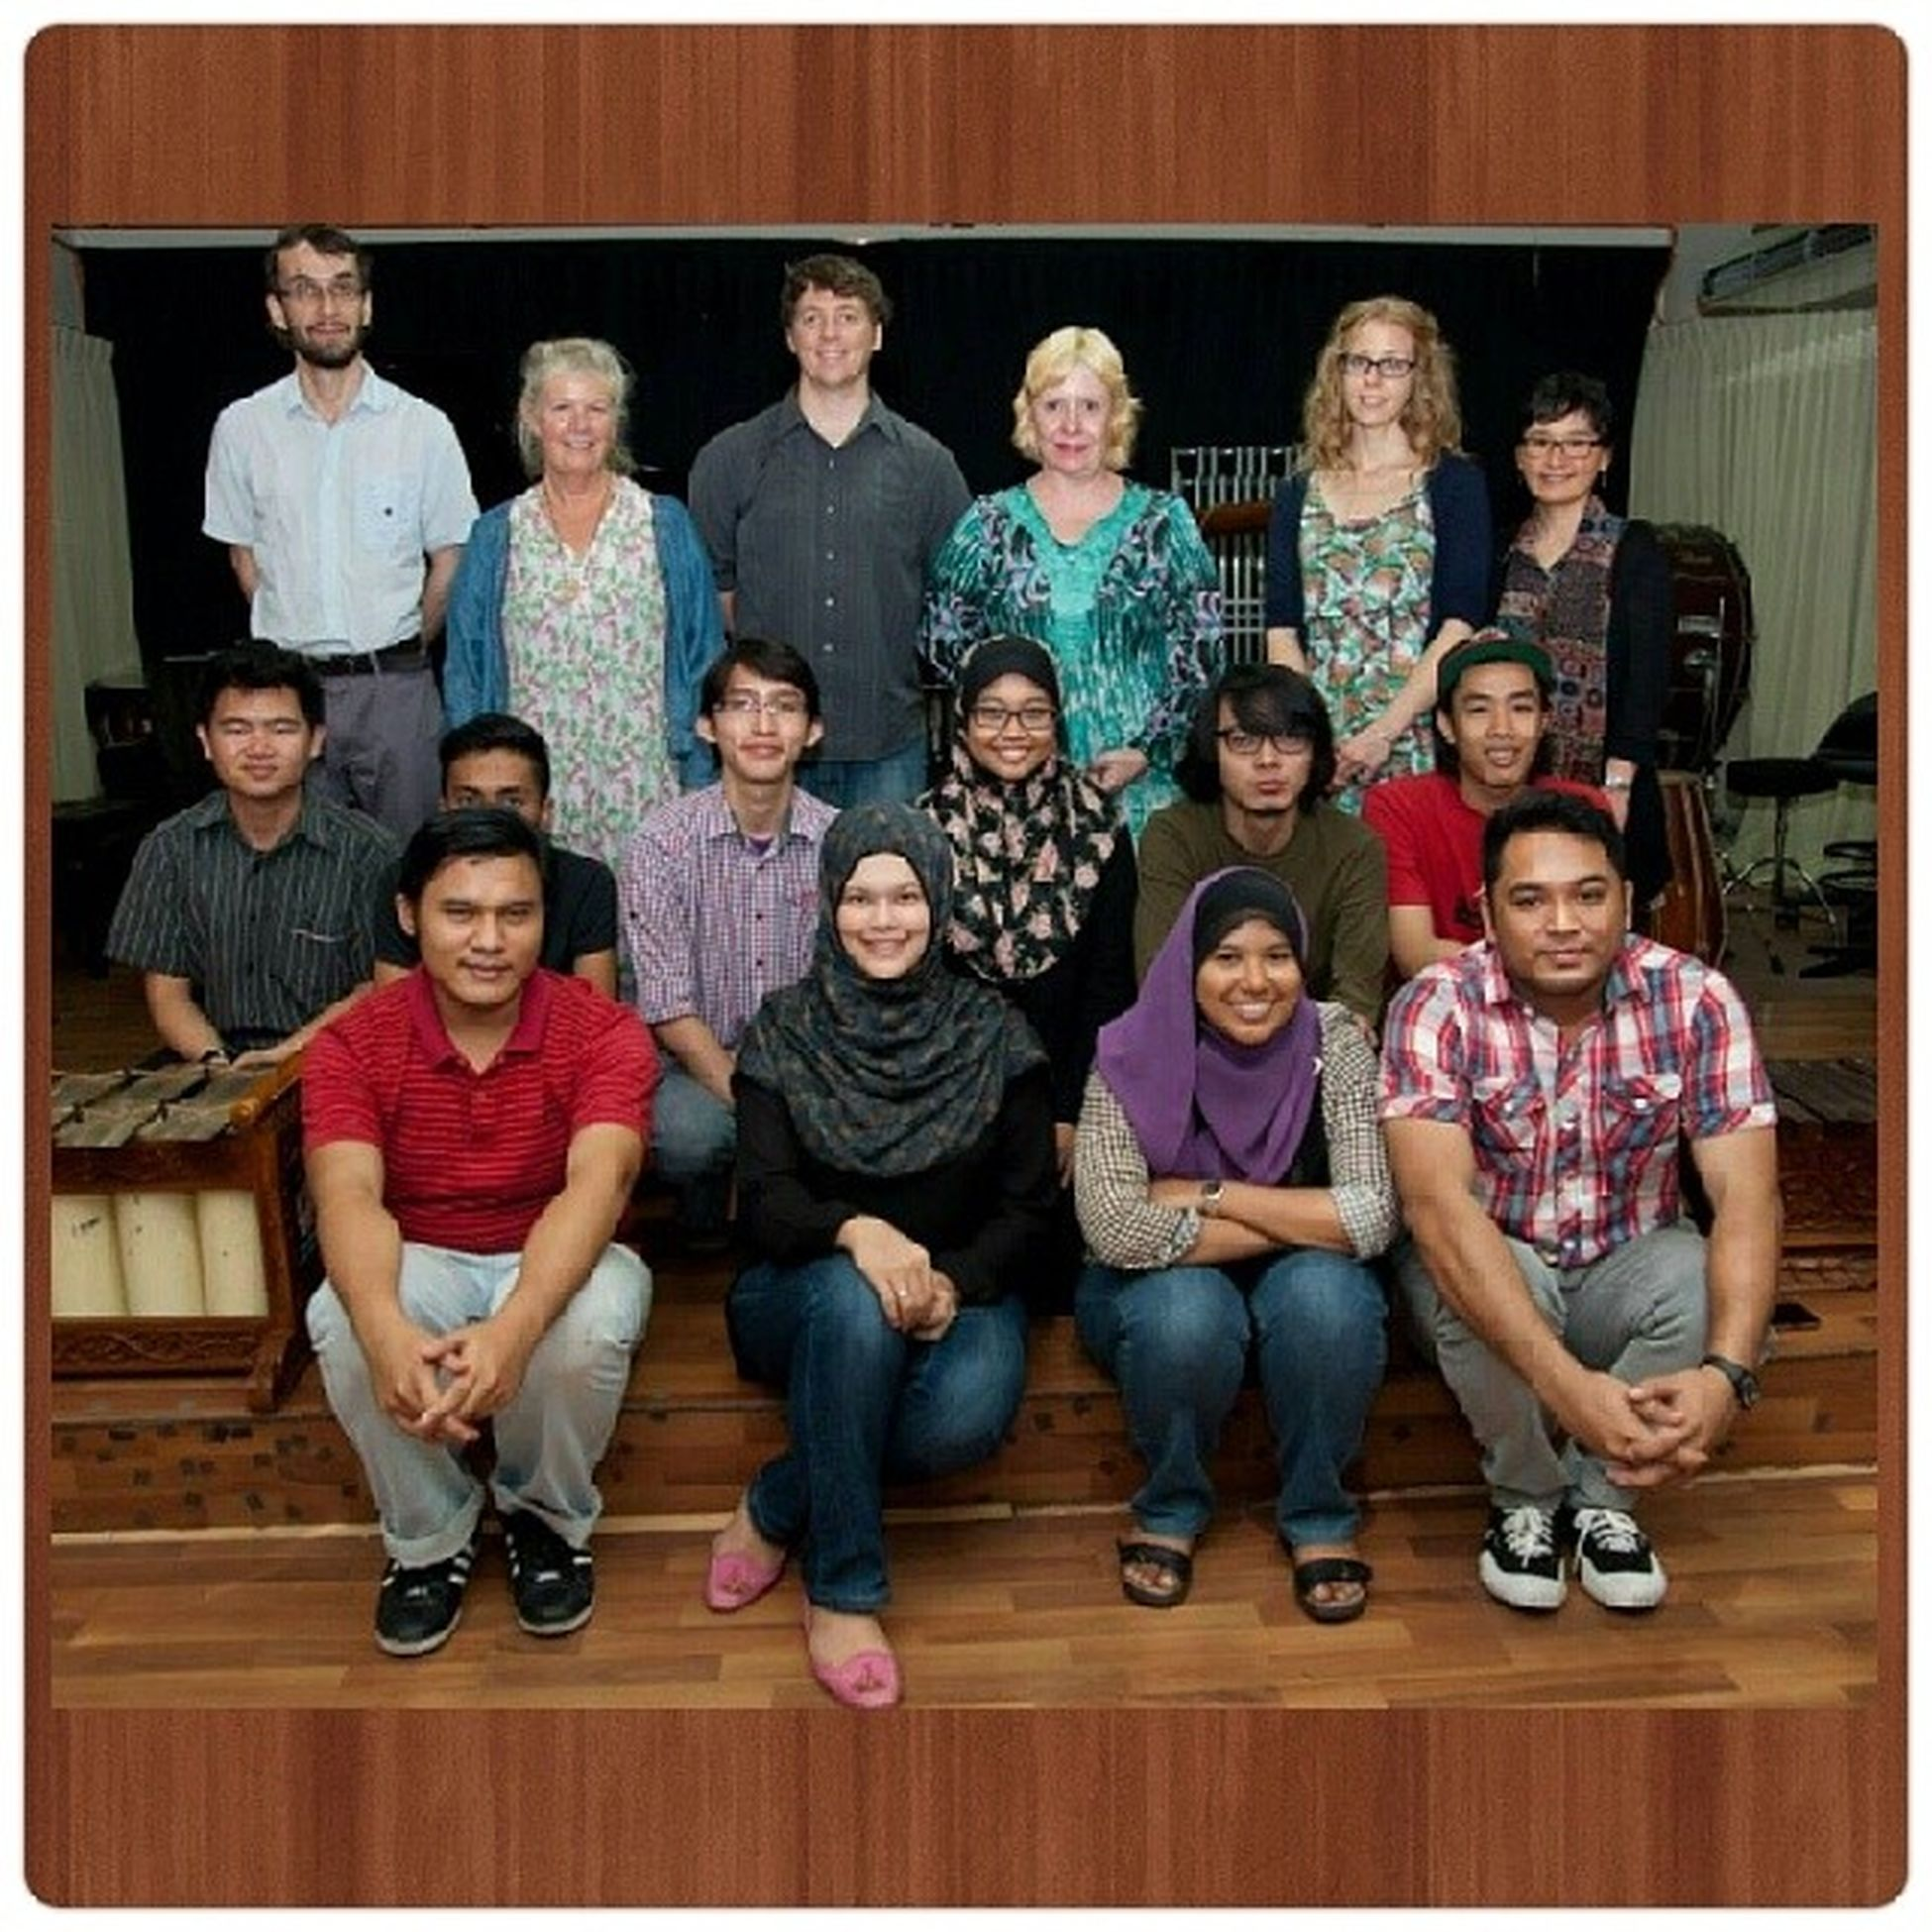 Bridges Collective's Representatives, Mr. Ross, Dr. Katia, the Composers and Players. BridgesCollectiveCompetition2014 .